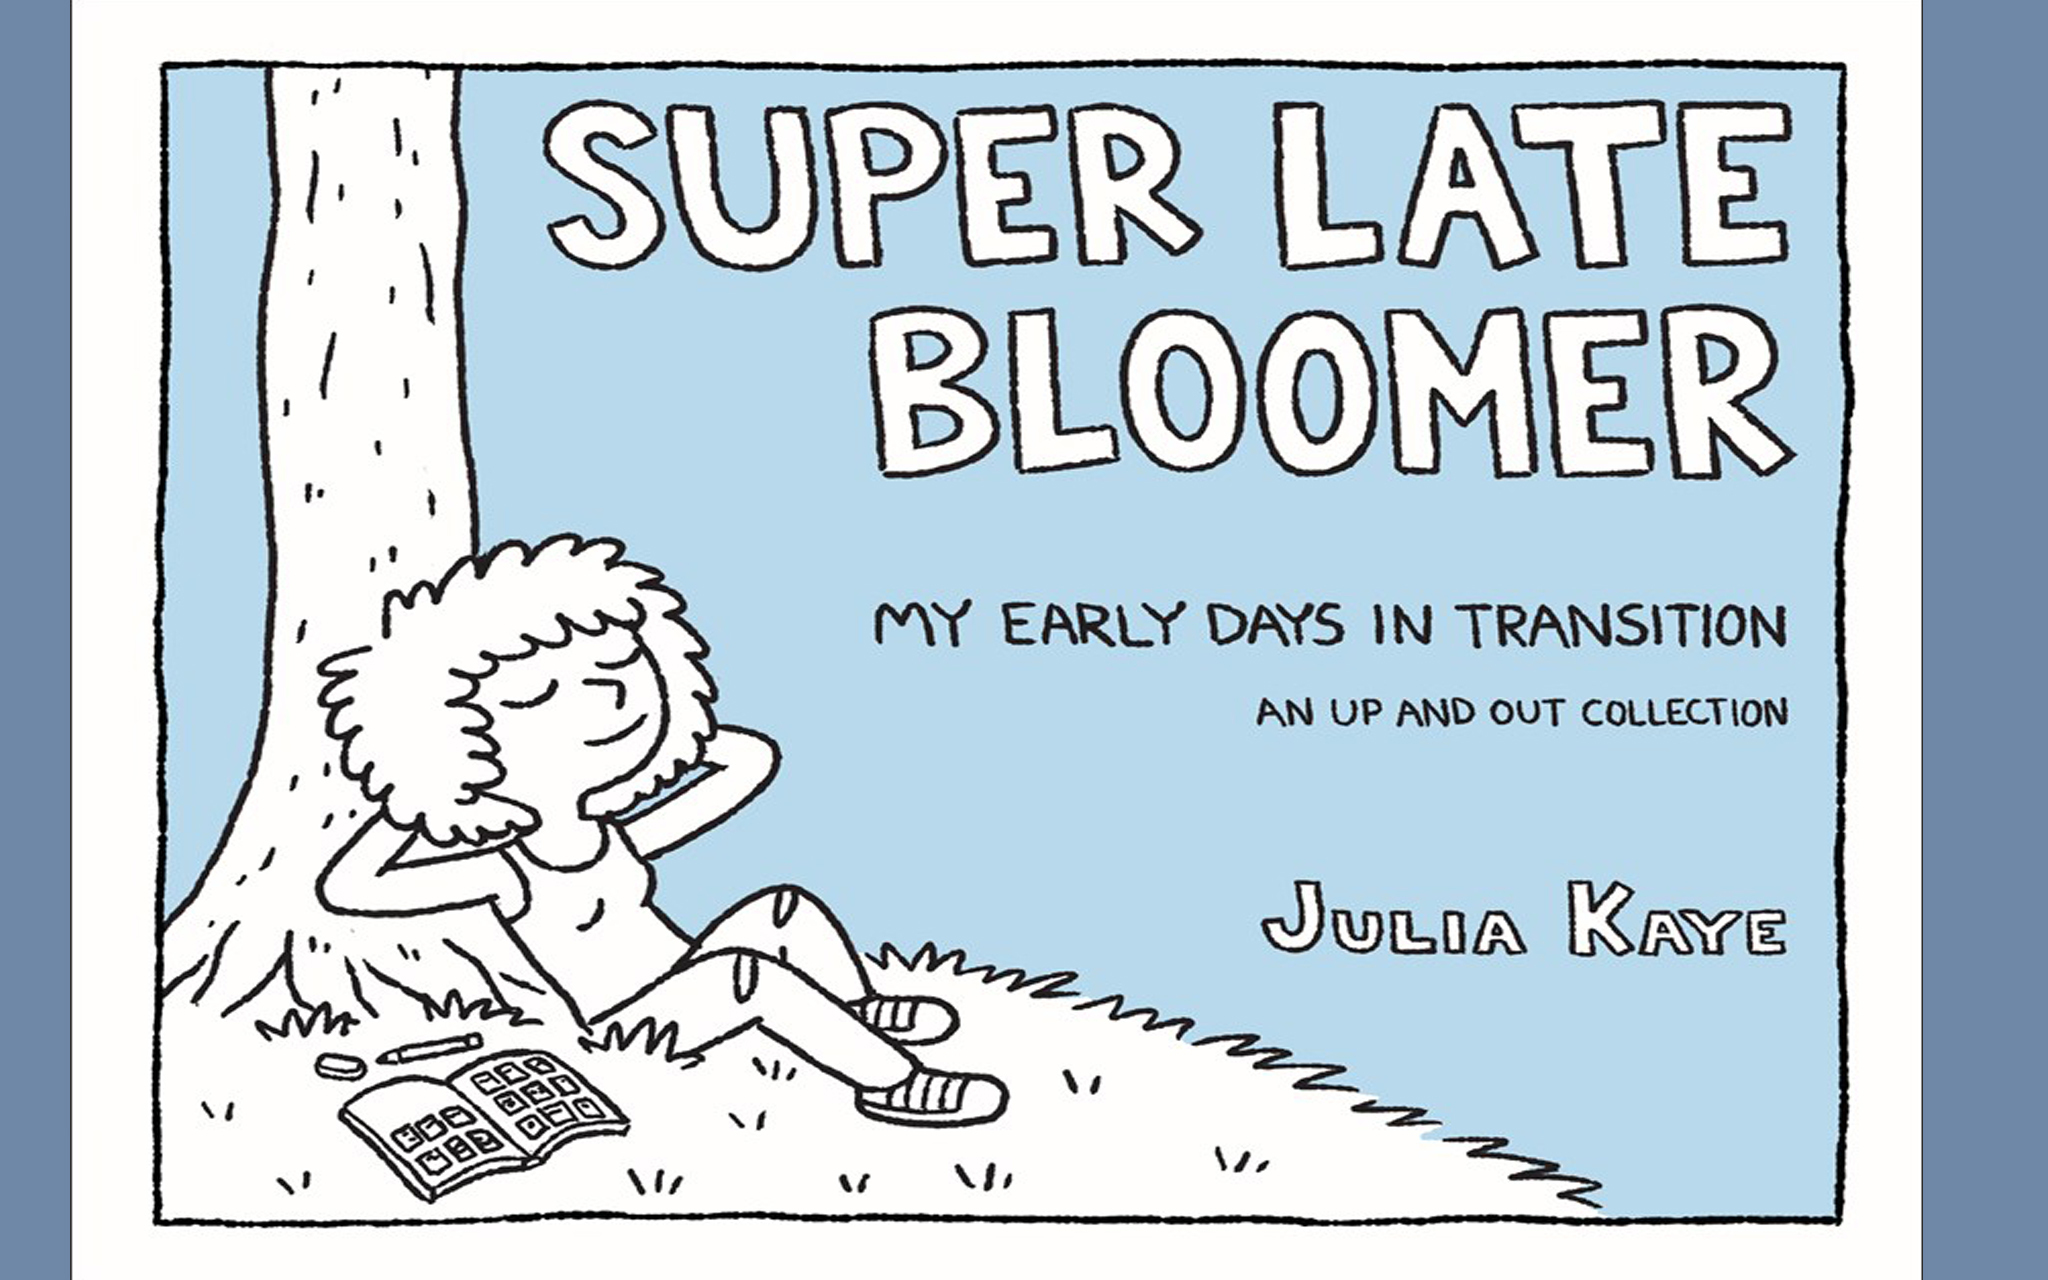 Julia Kaye's 'Super Late Bloomer' Springs onto Bookshelves